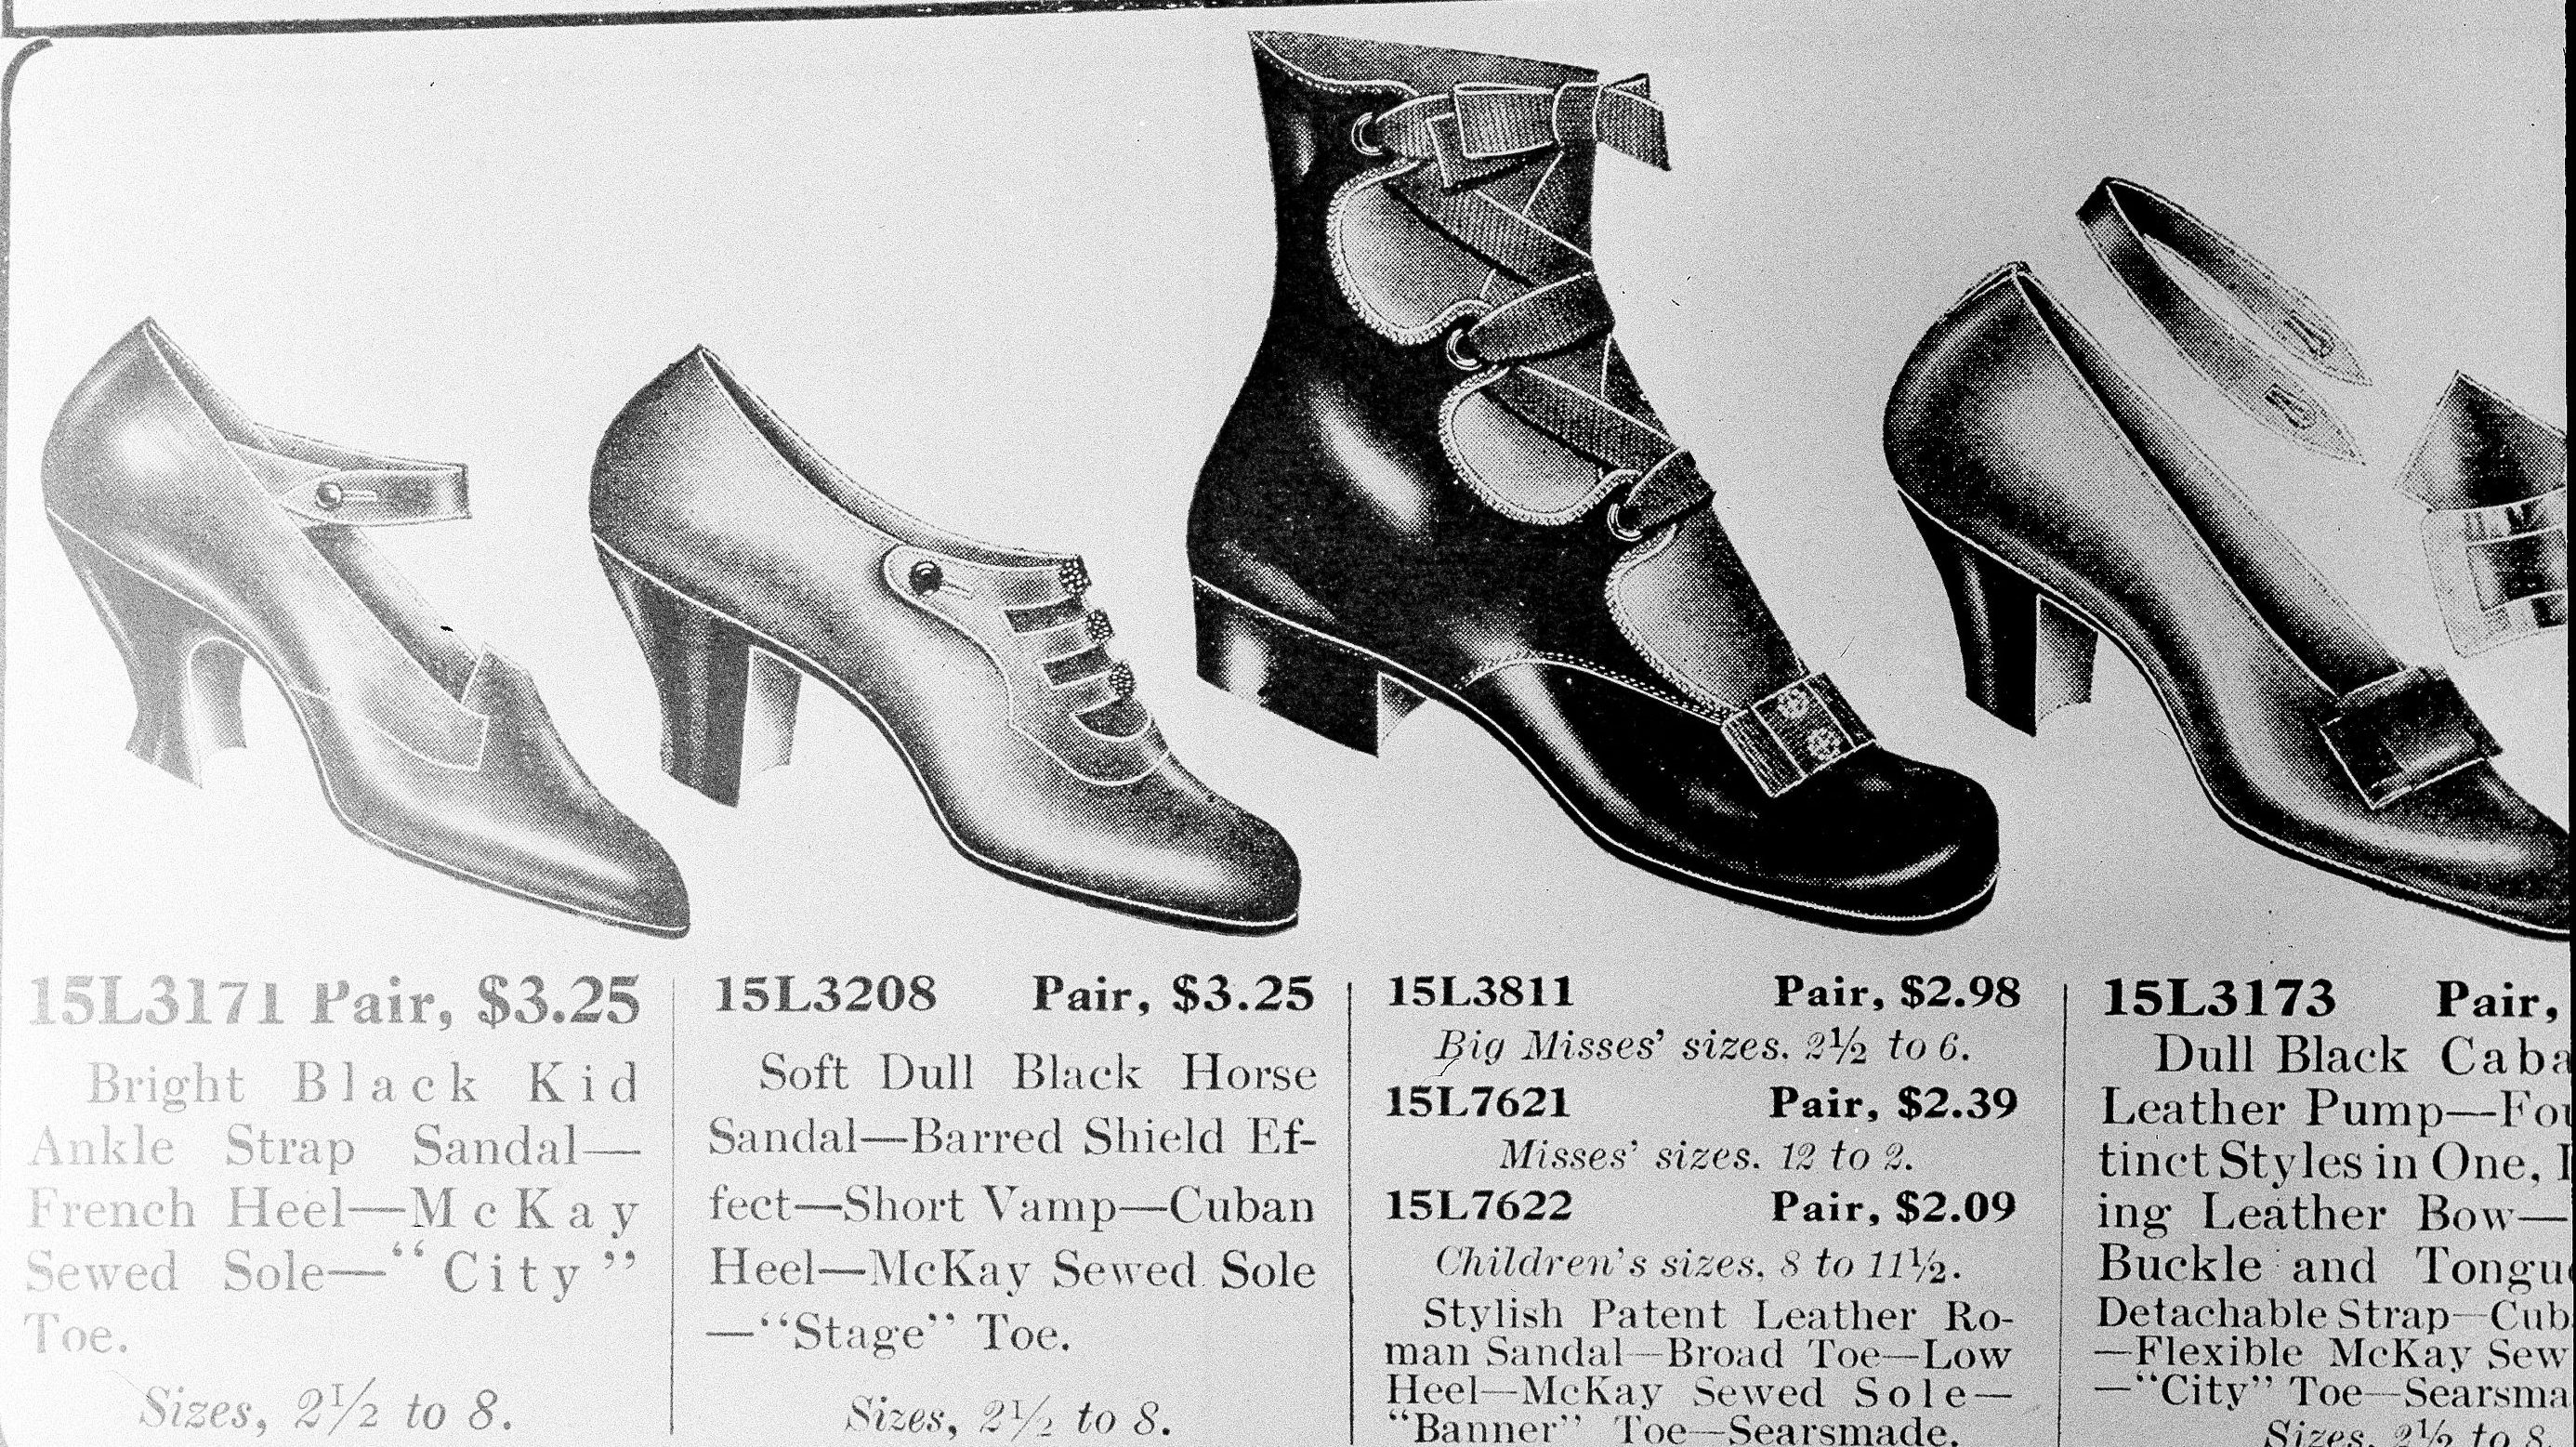 A photo of shoes from a vintage sears catalogue